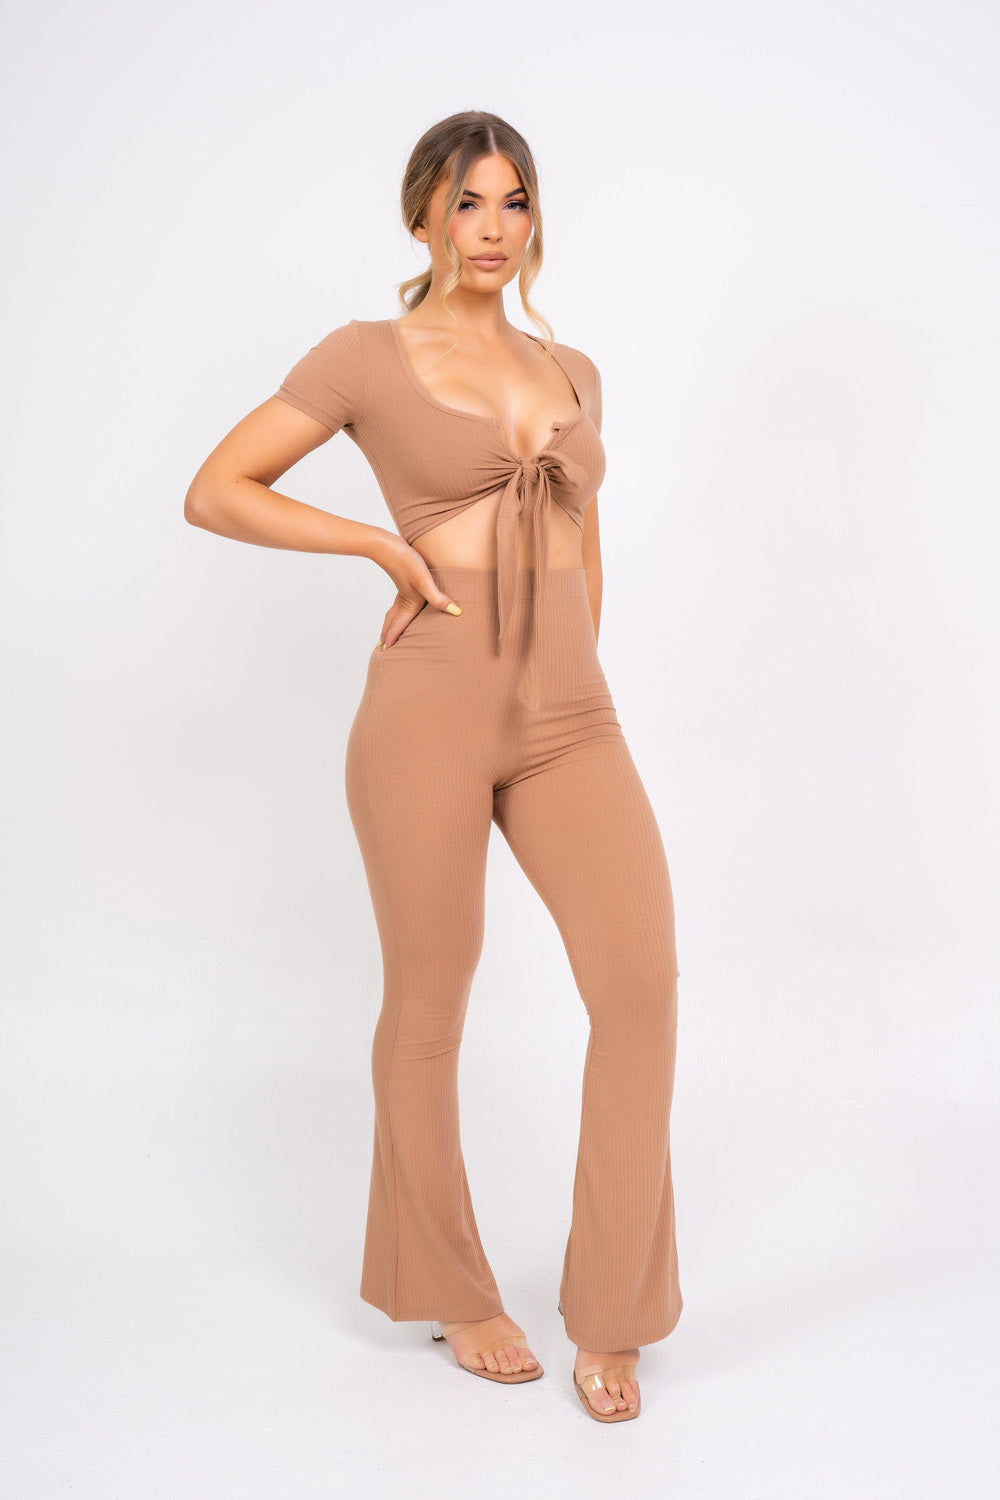 Never Endin' Sand Ribbed Two Piece Tie Front Top High Rise Flare Wide Trousers Co-ord Set